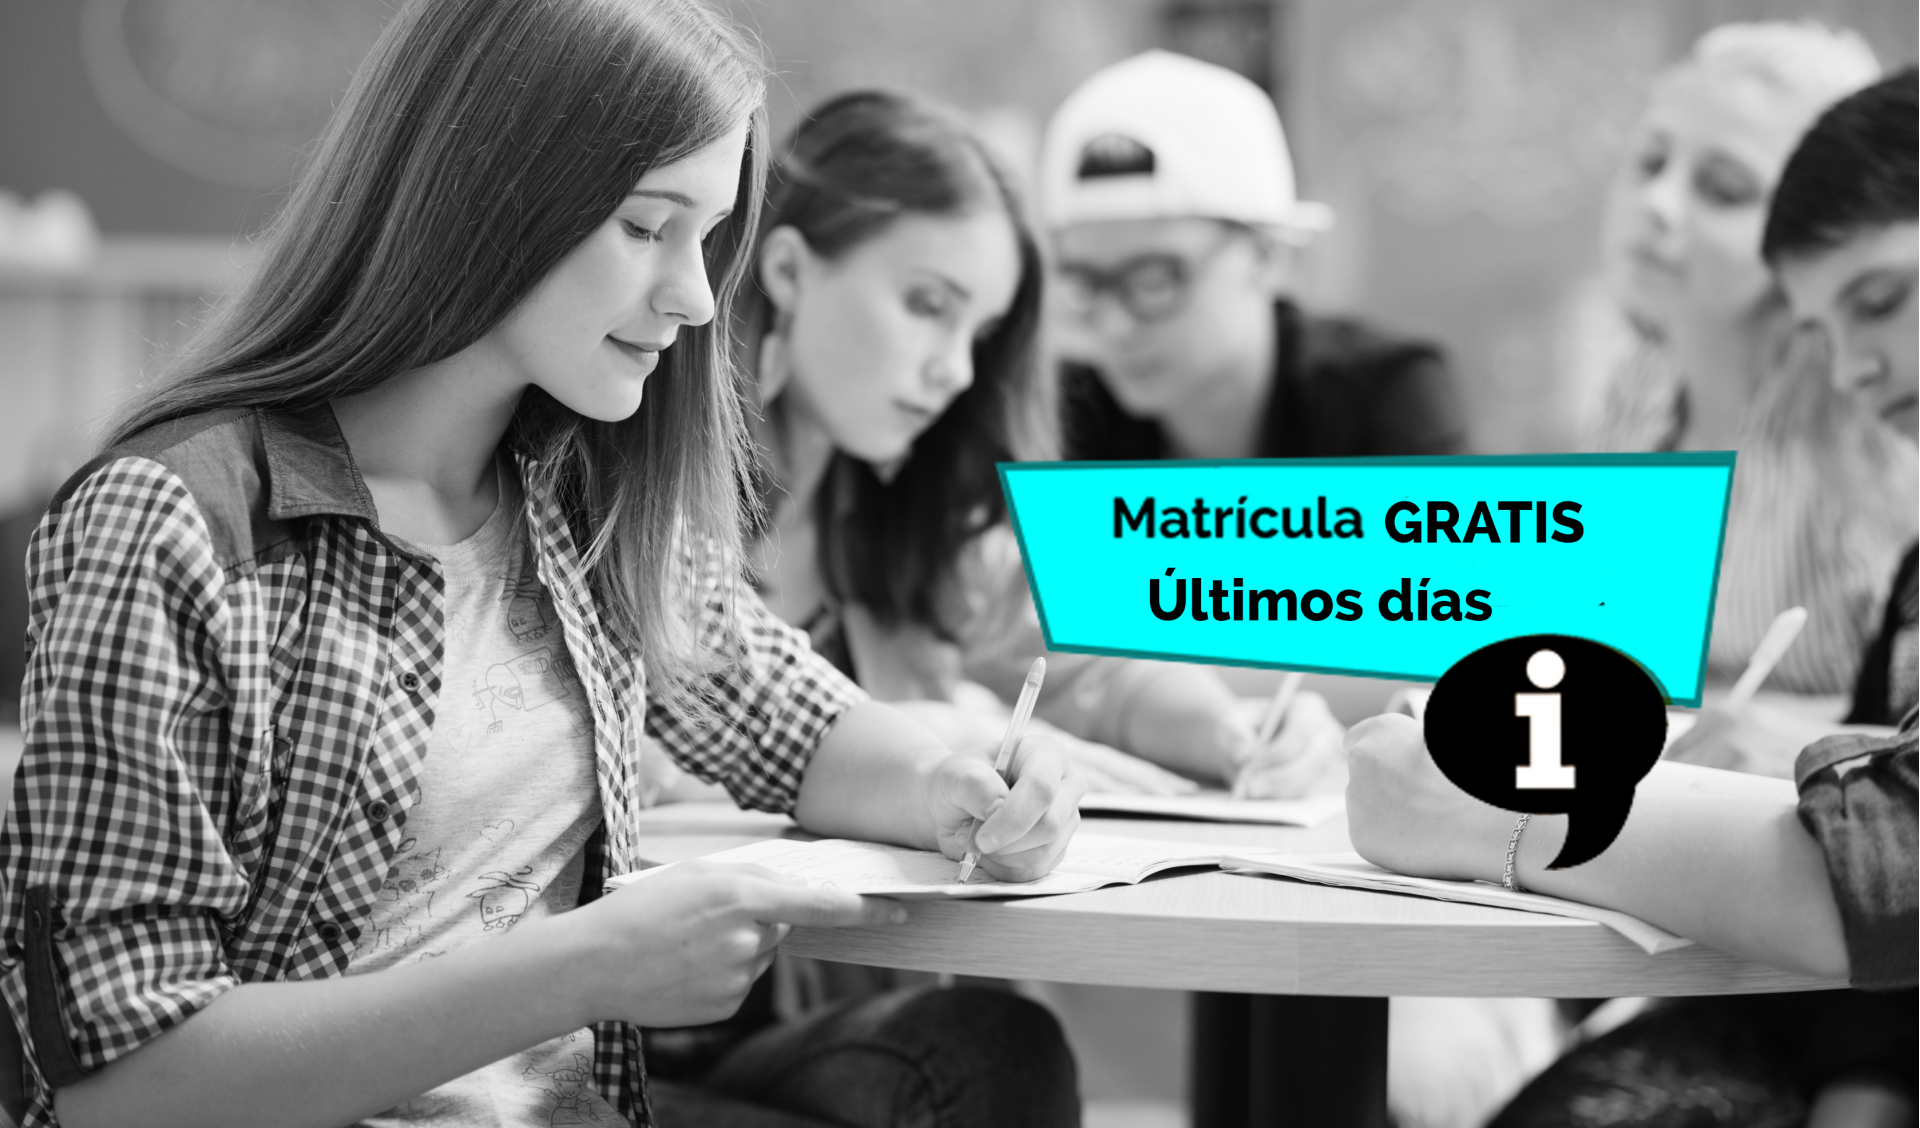 https://escuela-europea.com/resources/slides/slide-1-matricula-gratis.png